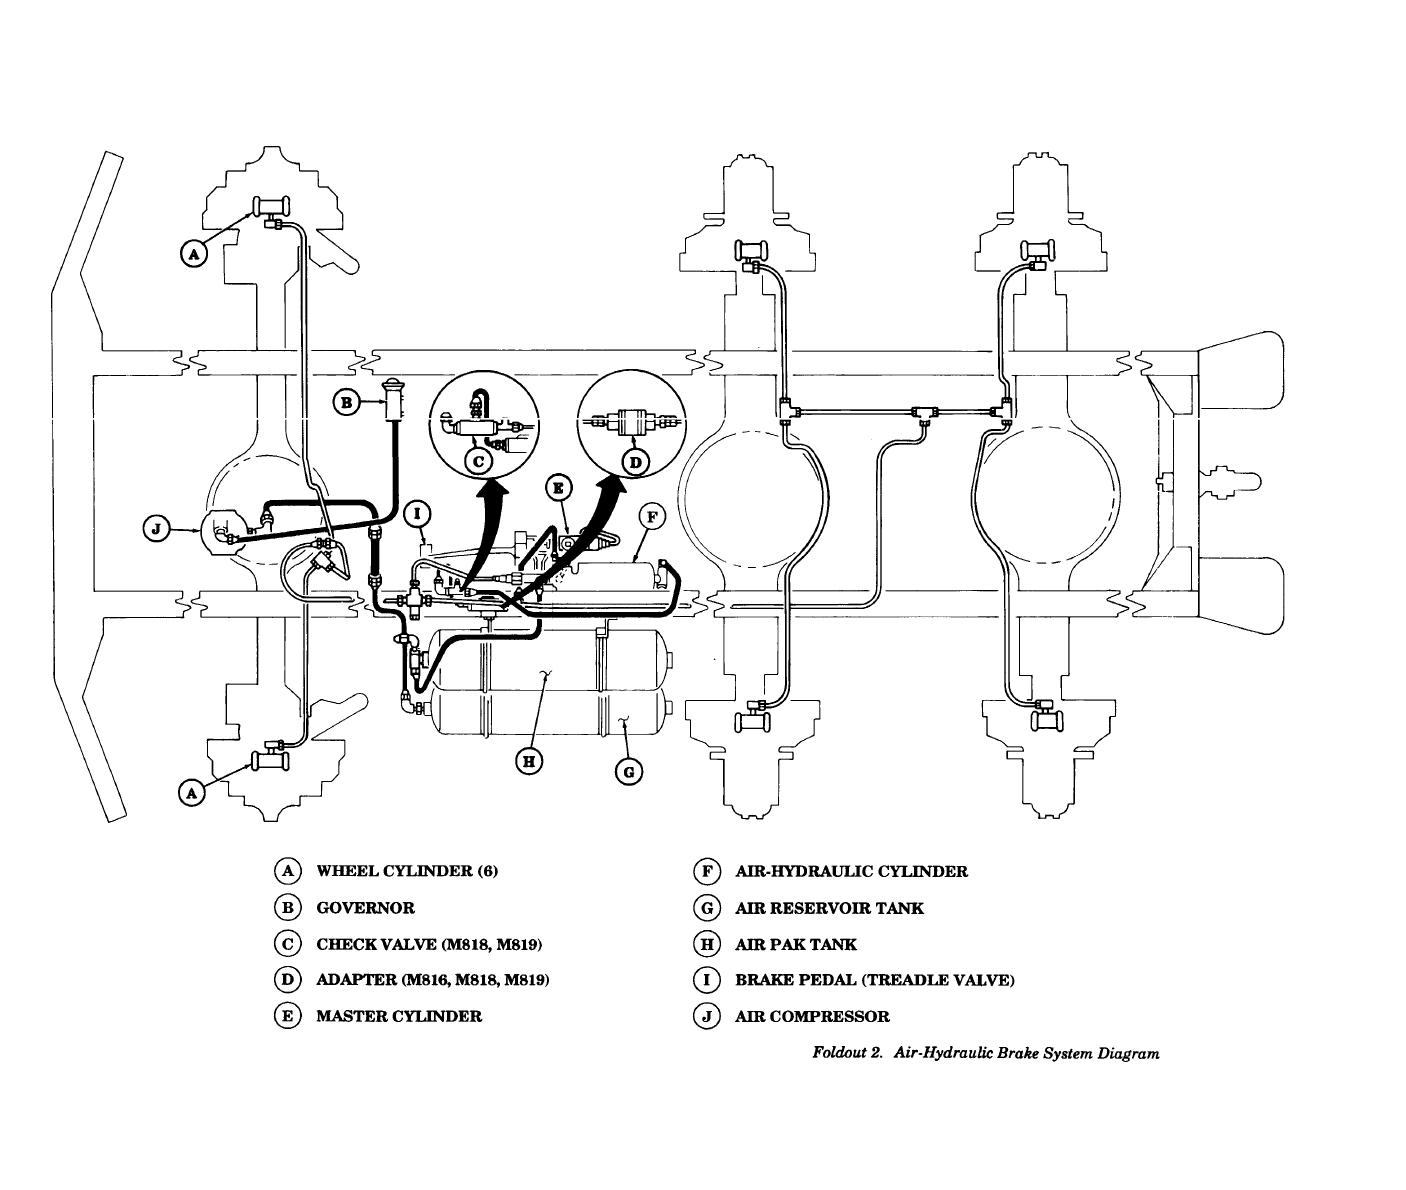 Foldout 2 Air Hydraulic Brake System Diagram